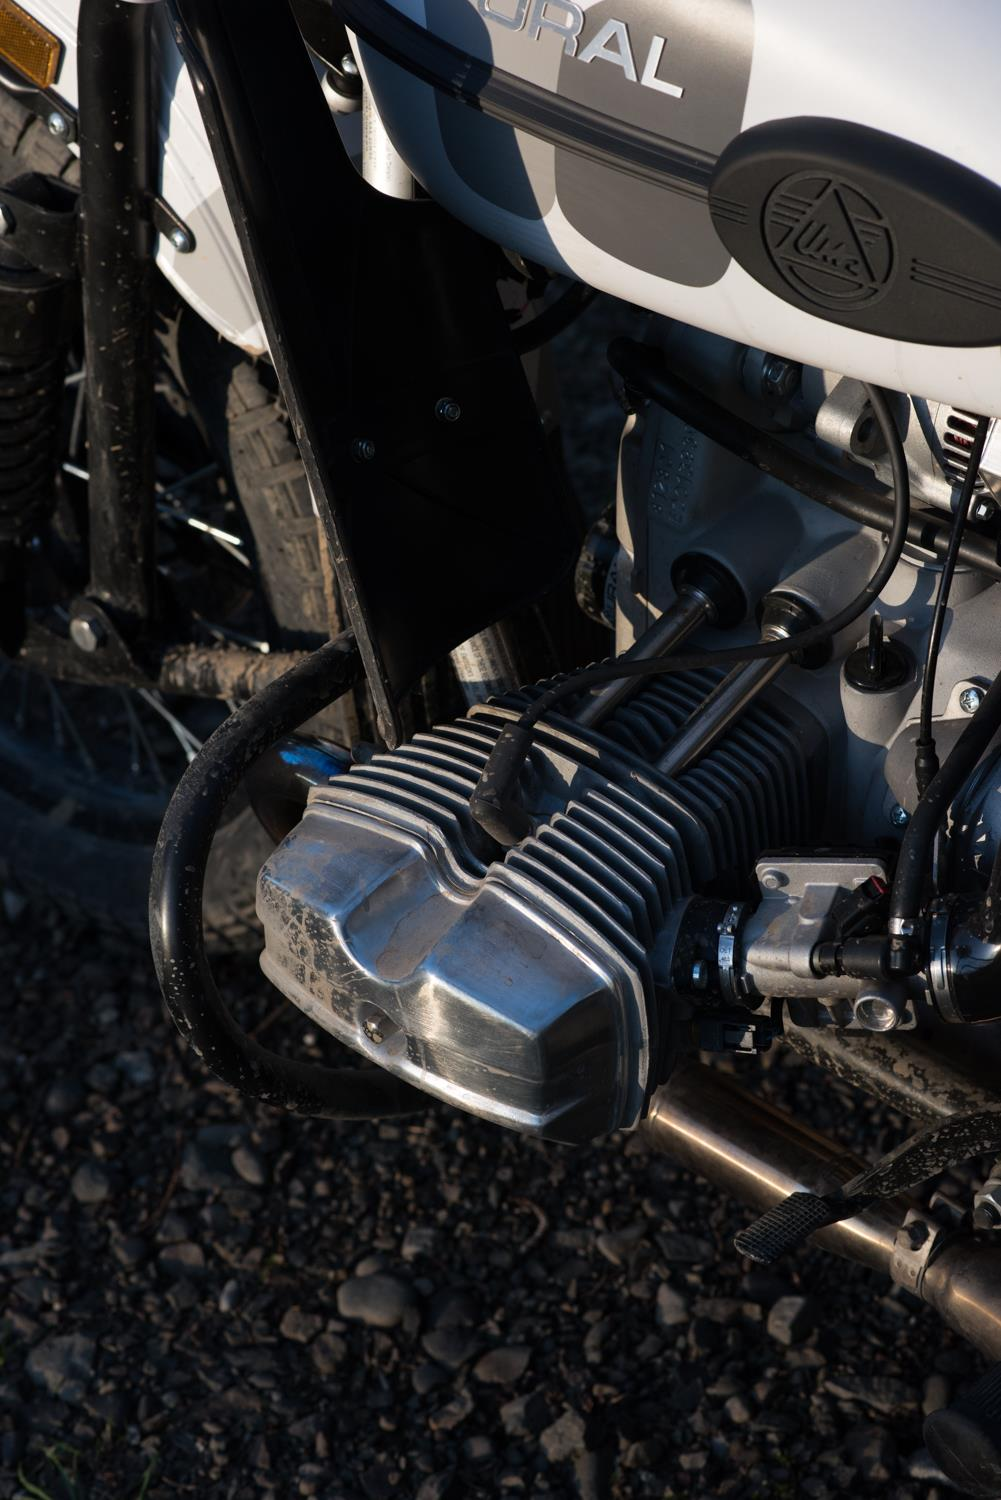 16Gear_Ural_9971-LR-Copy